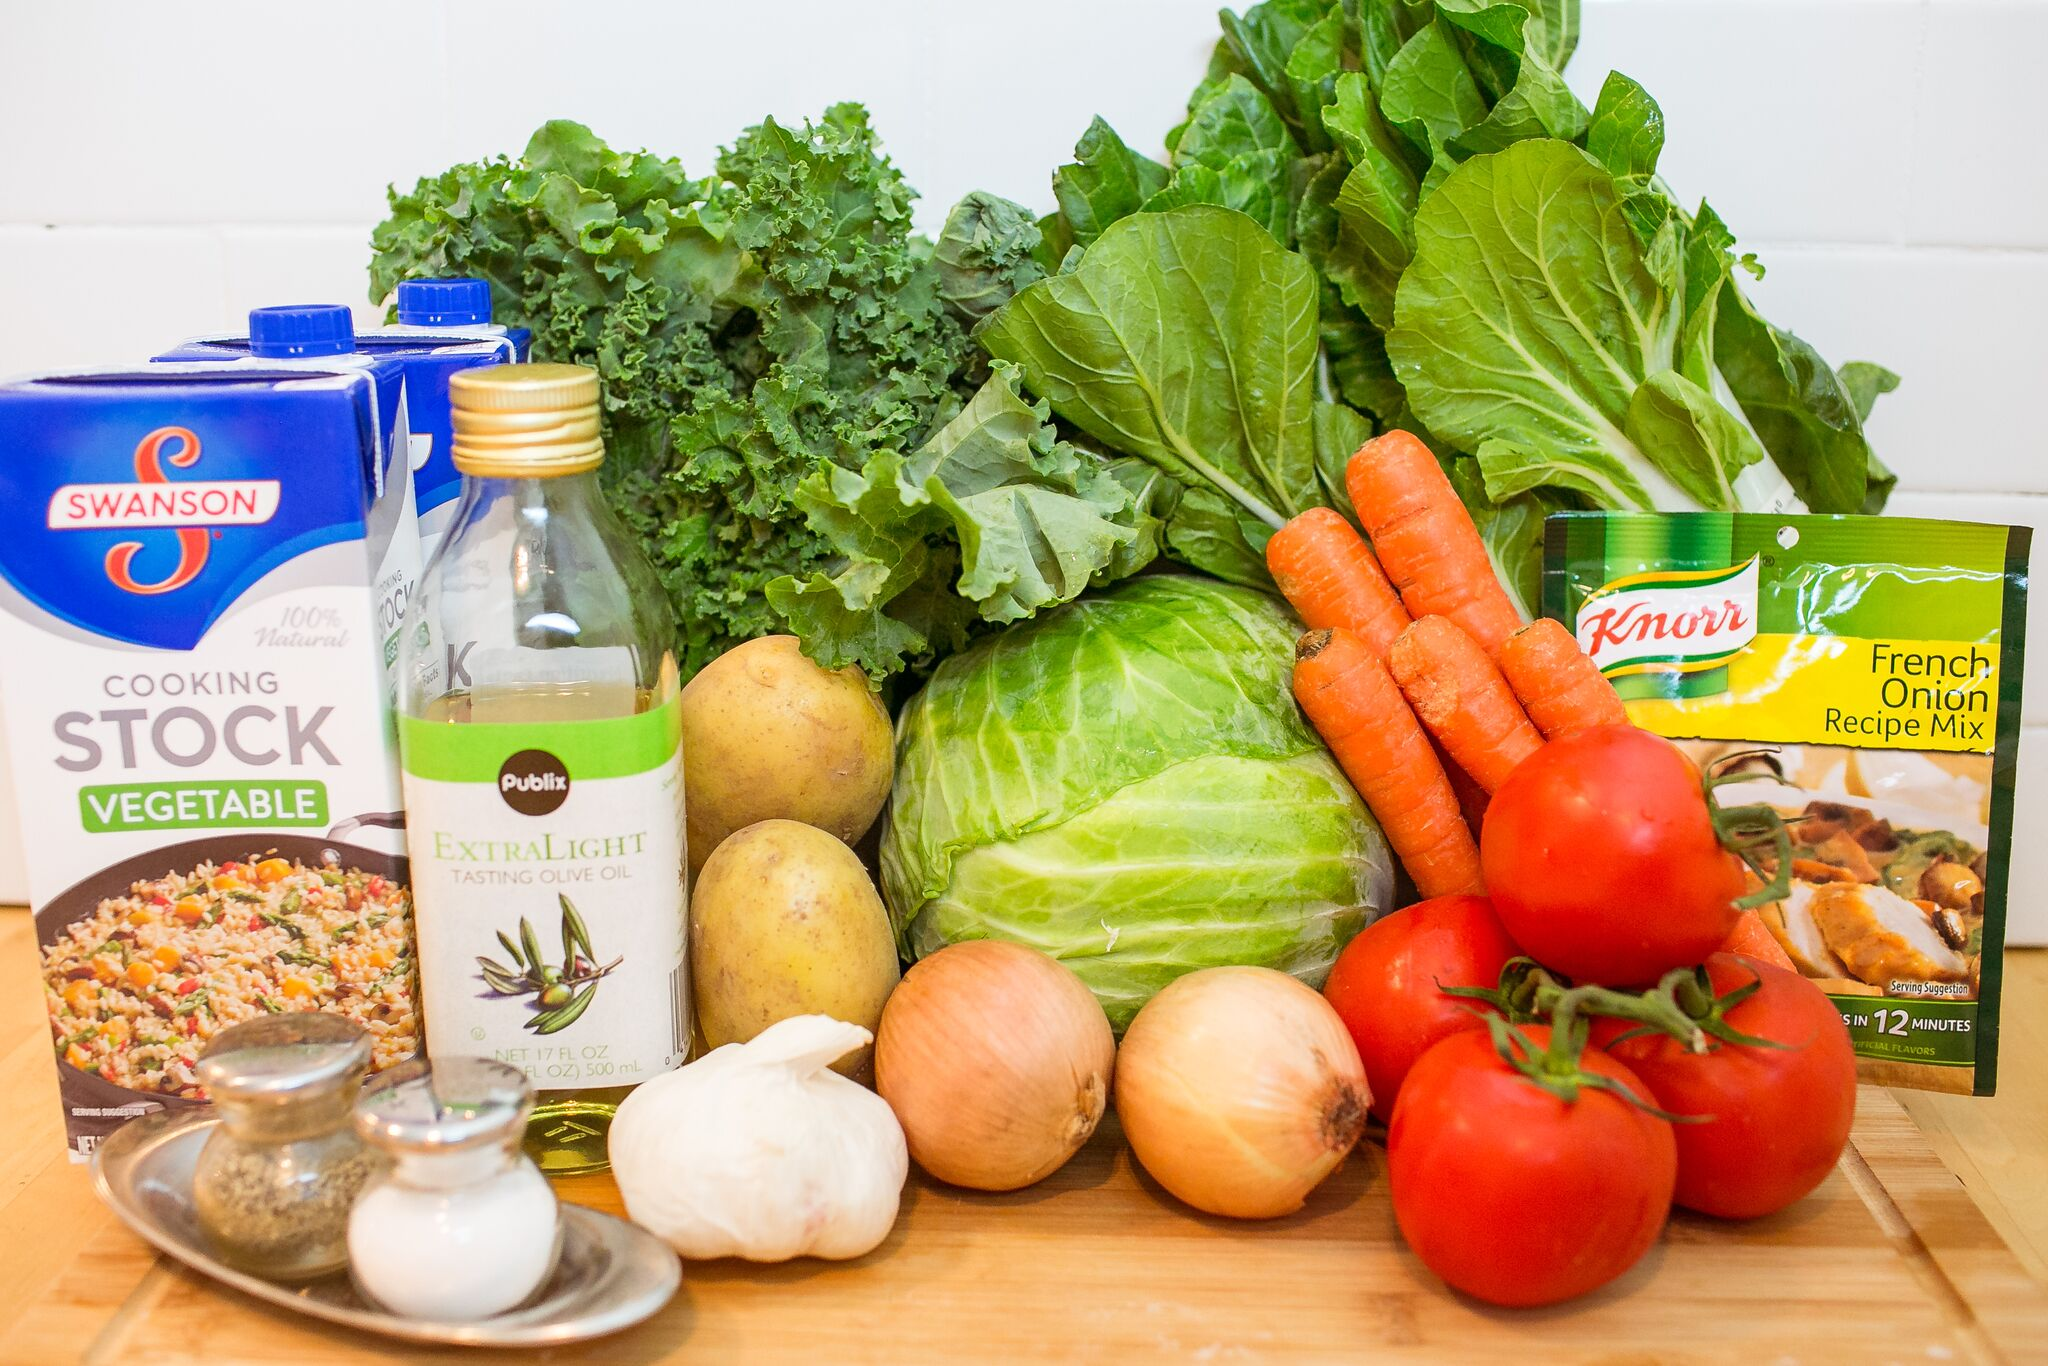 Assemble your ingredients for the winter diet soup: bok choy, kale, cabbage, olive oil, vegetable stock, tomatoes, yellow onions, garlic, salt, pepper, carrots, potatoes and french onion mix.